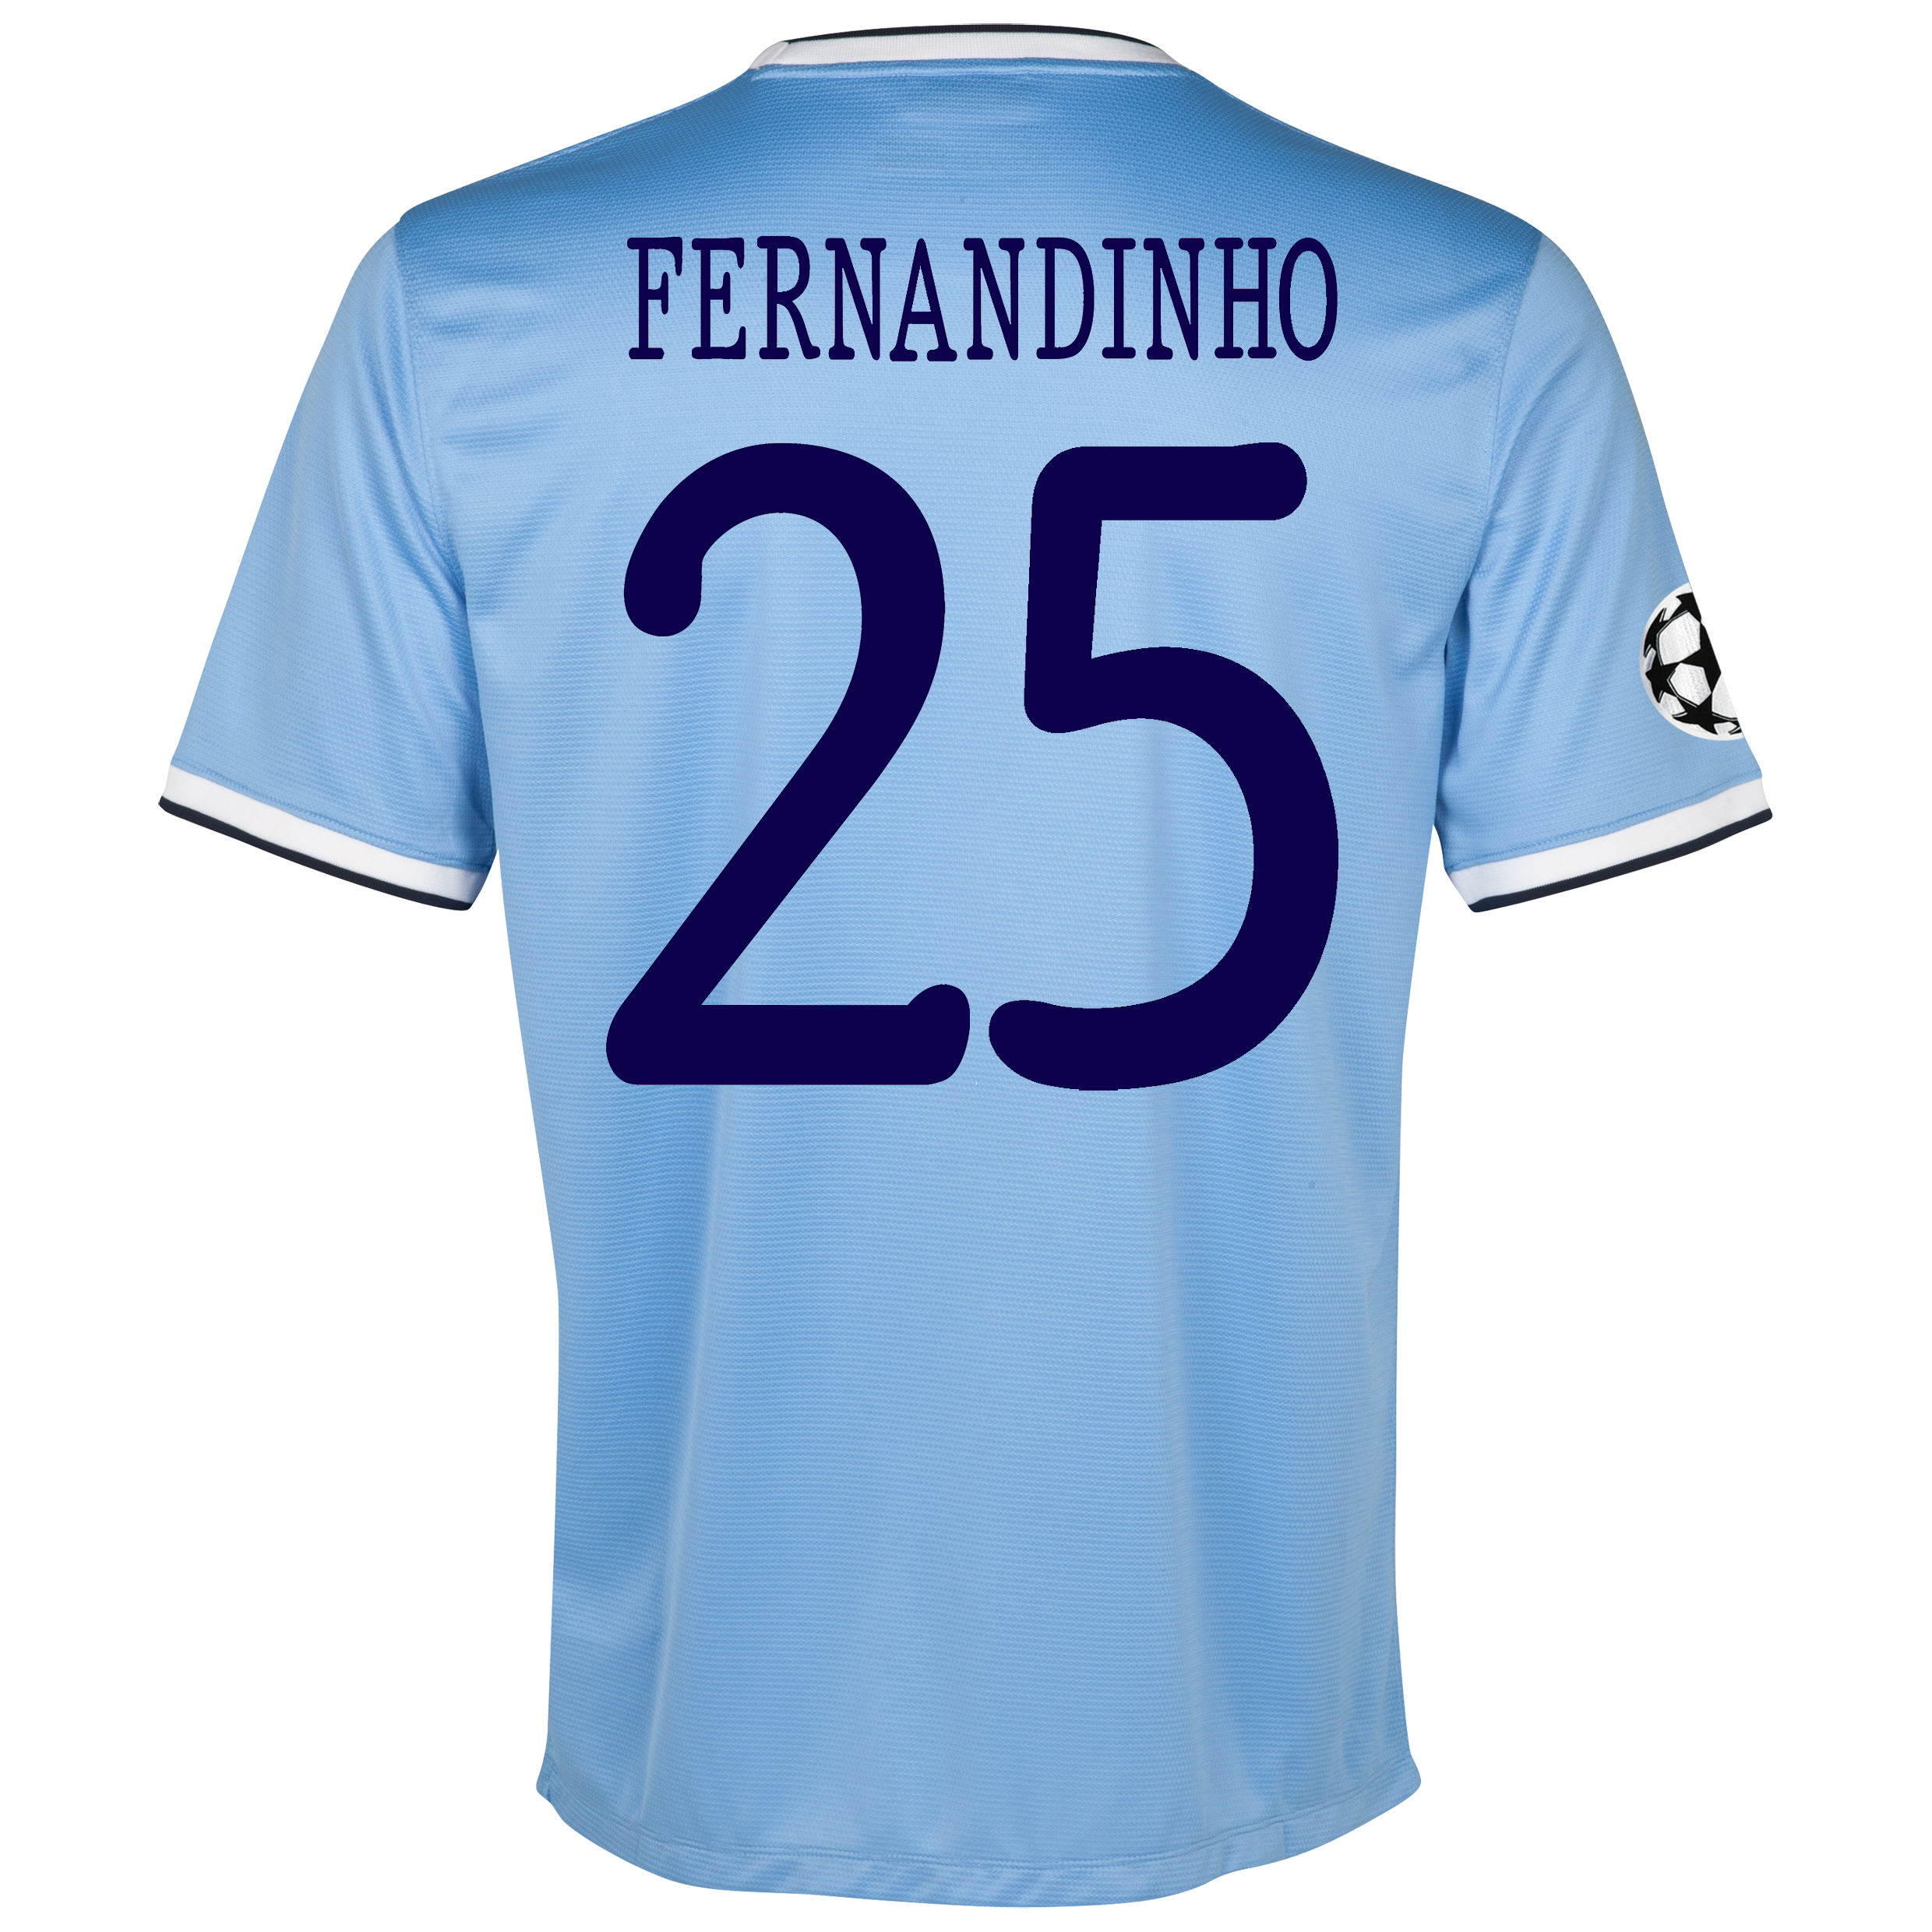 Manchester City UEFA Champions League Home Shirt 2013/14 with Fernandinho 25 printing